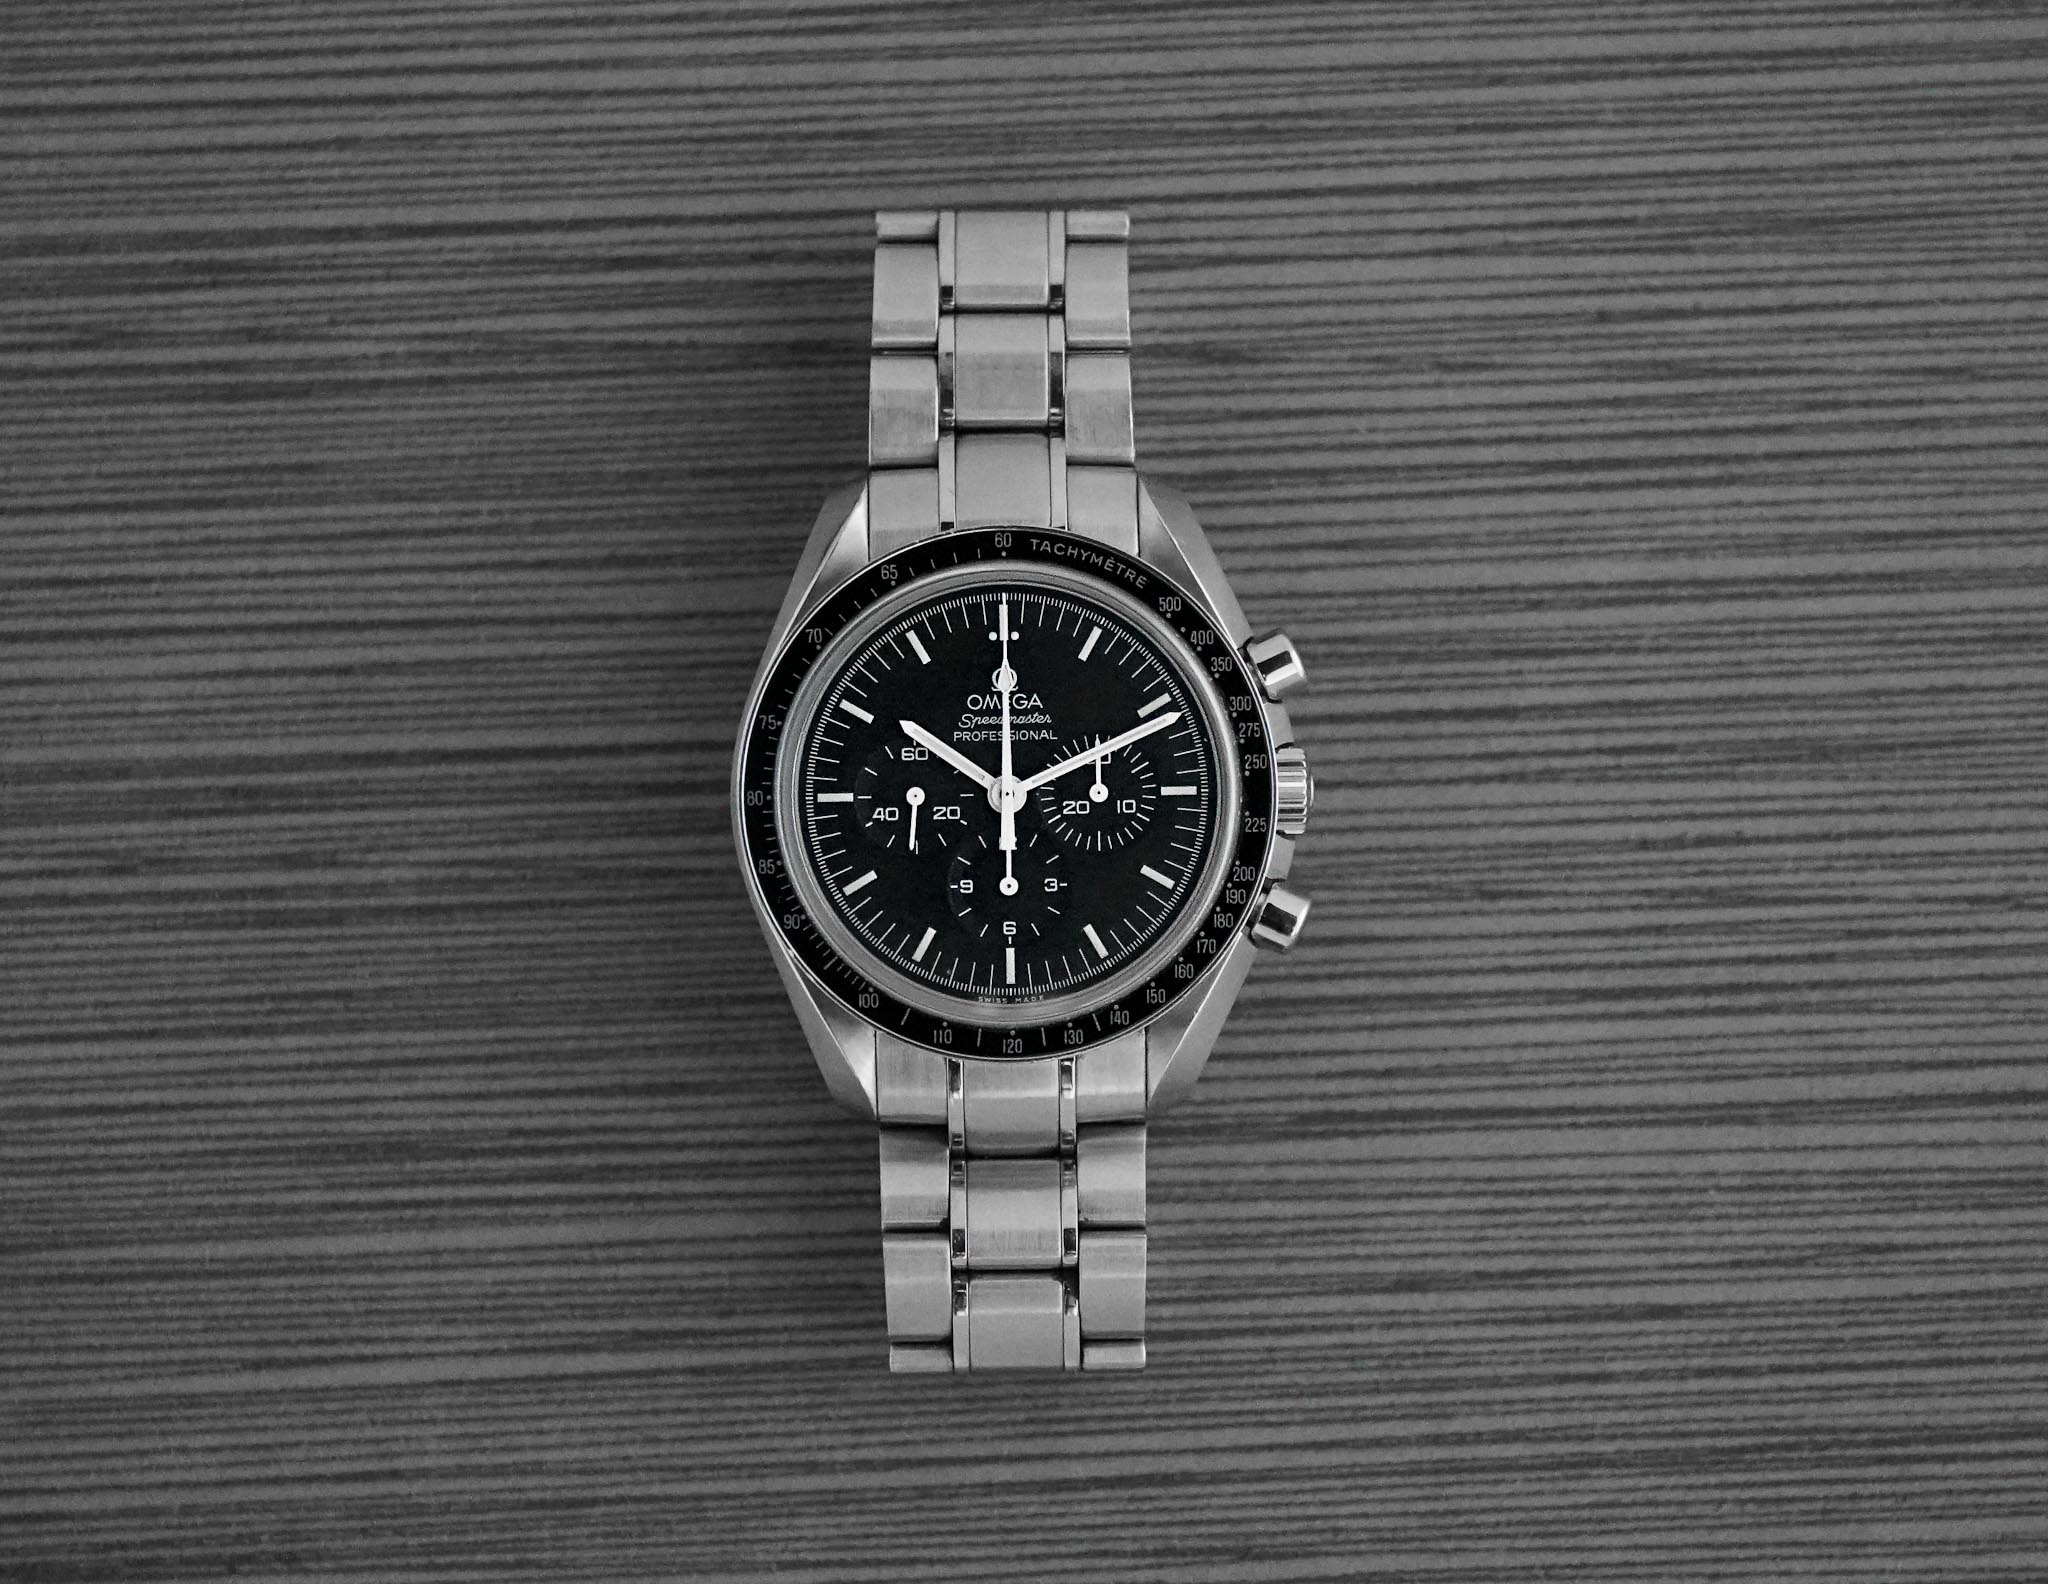 Omega Speedmaster: The Price of Emotion